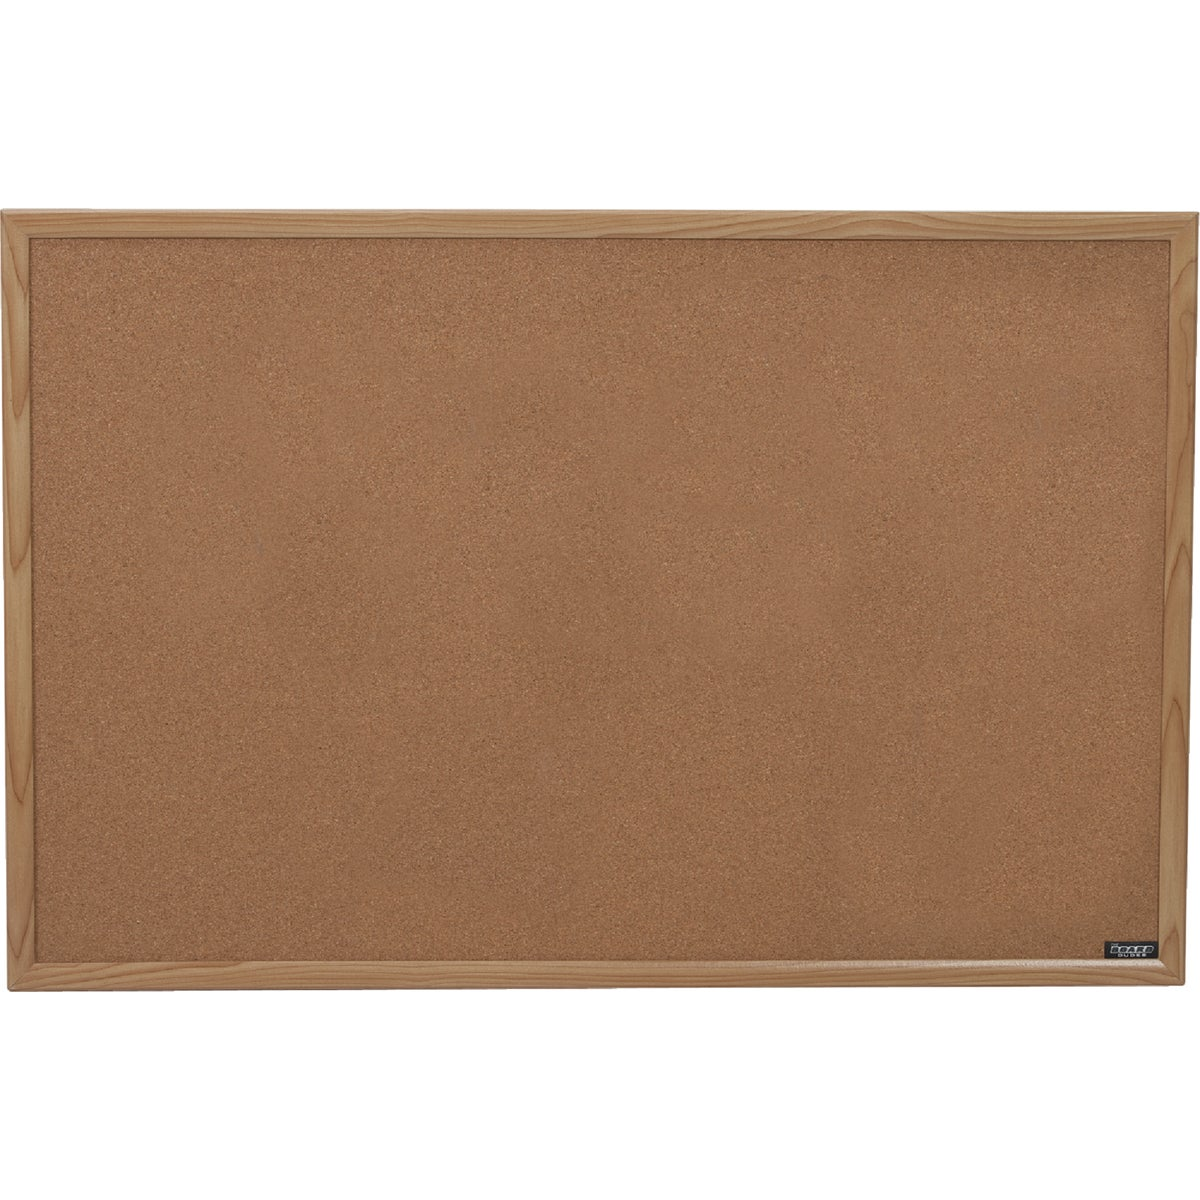 35X23 CORK BOARD - 9164 by Board Dudes Inc